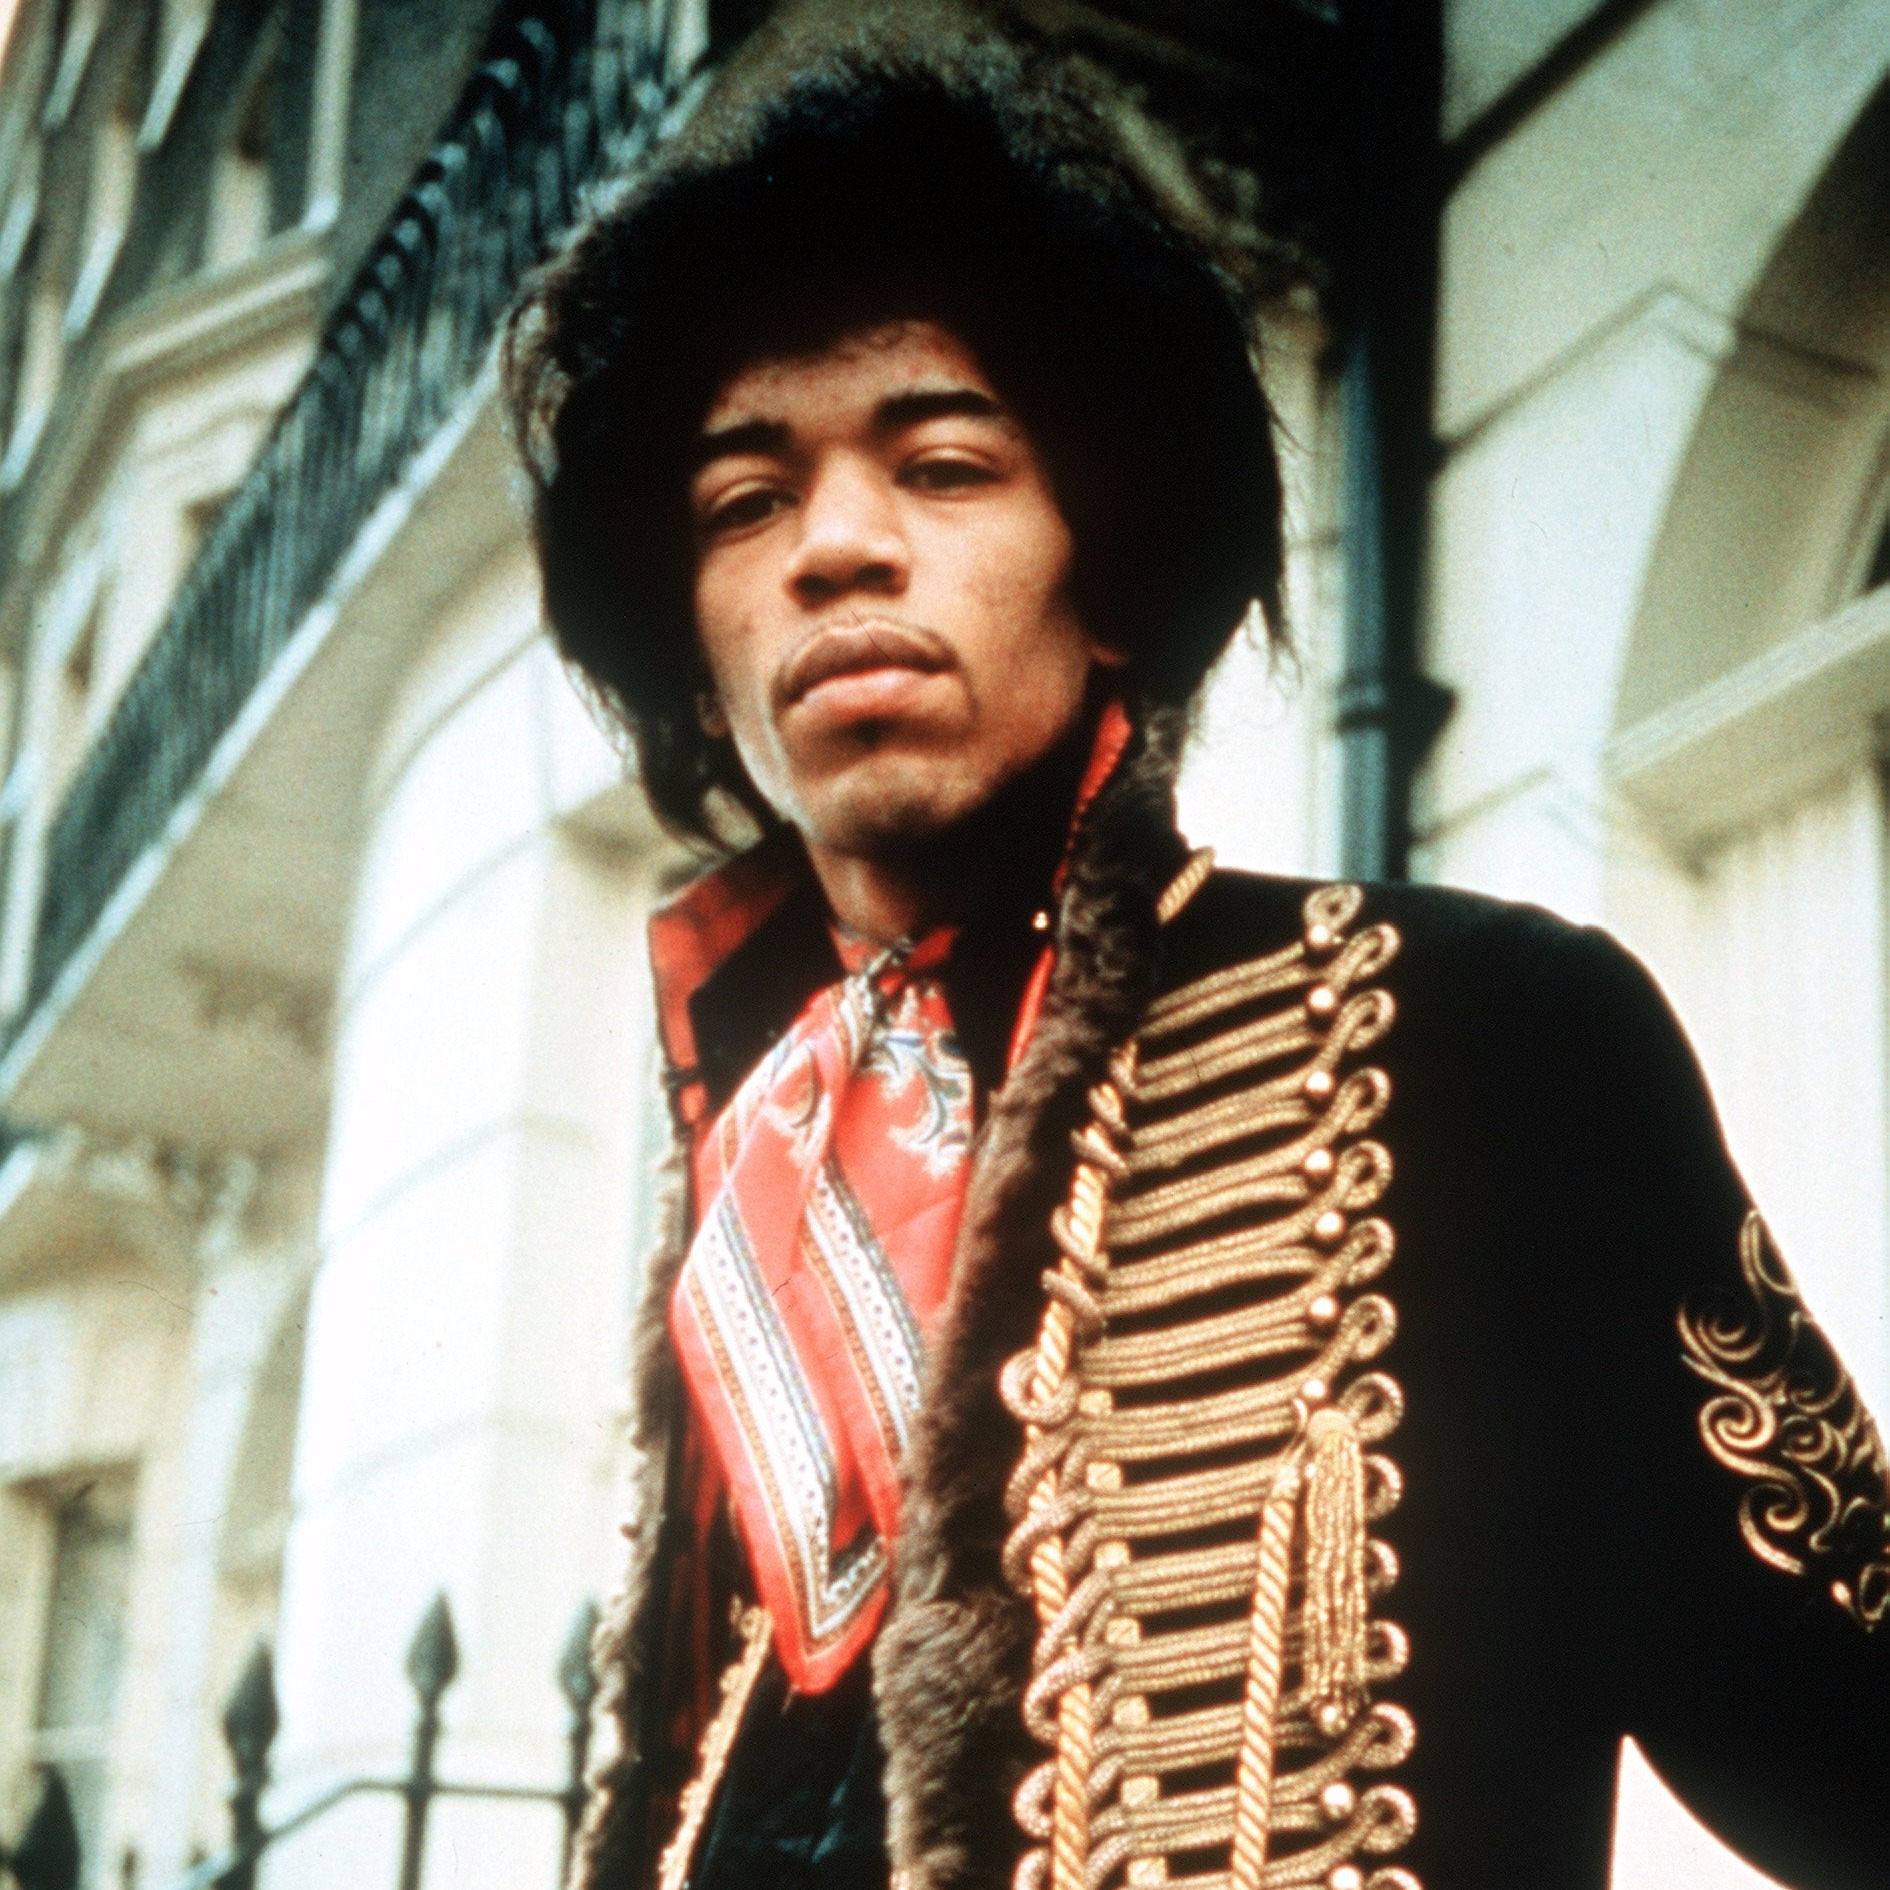 a biography and life work of jimi hendrix a famous rock guitarist James marshall hendrix (born johnny allen hendrix november 27, 1942 - september 18, 1970), was an american guitarist, singer and songwriterhendrix was a major influence on other rock and roll musicians.